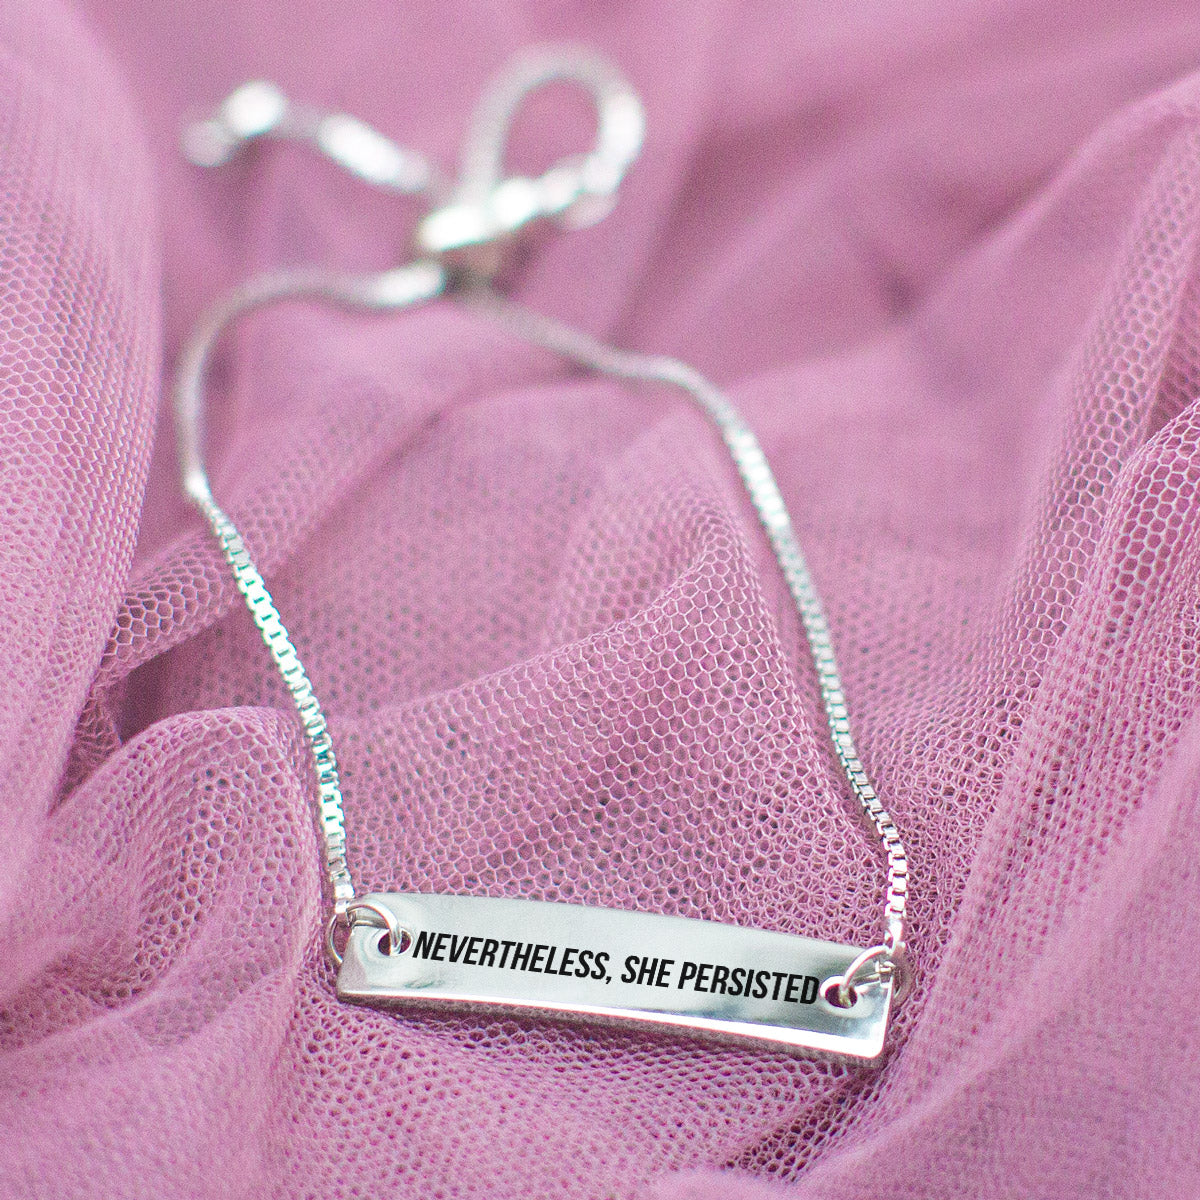 Nevertheless, She Persisted Silver Bar Adjustable Bracelet - pipercleo.com